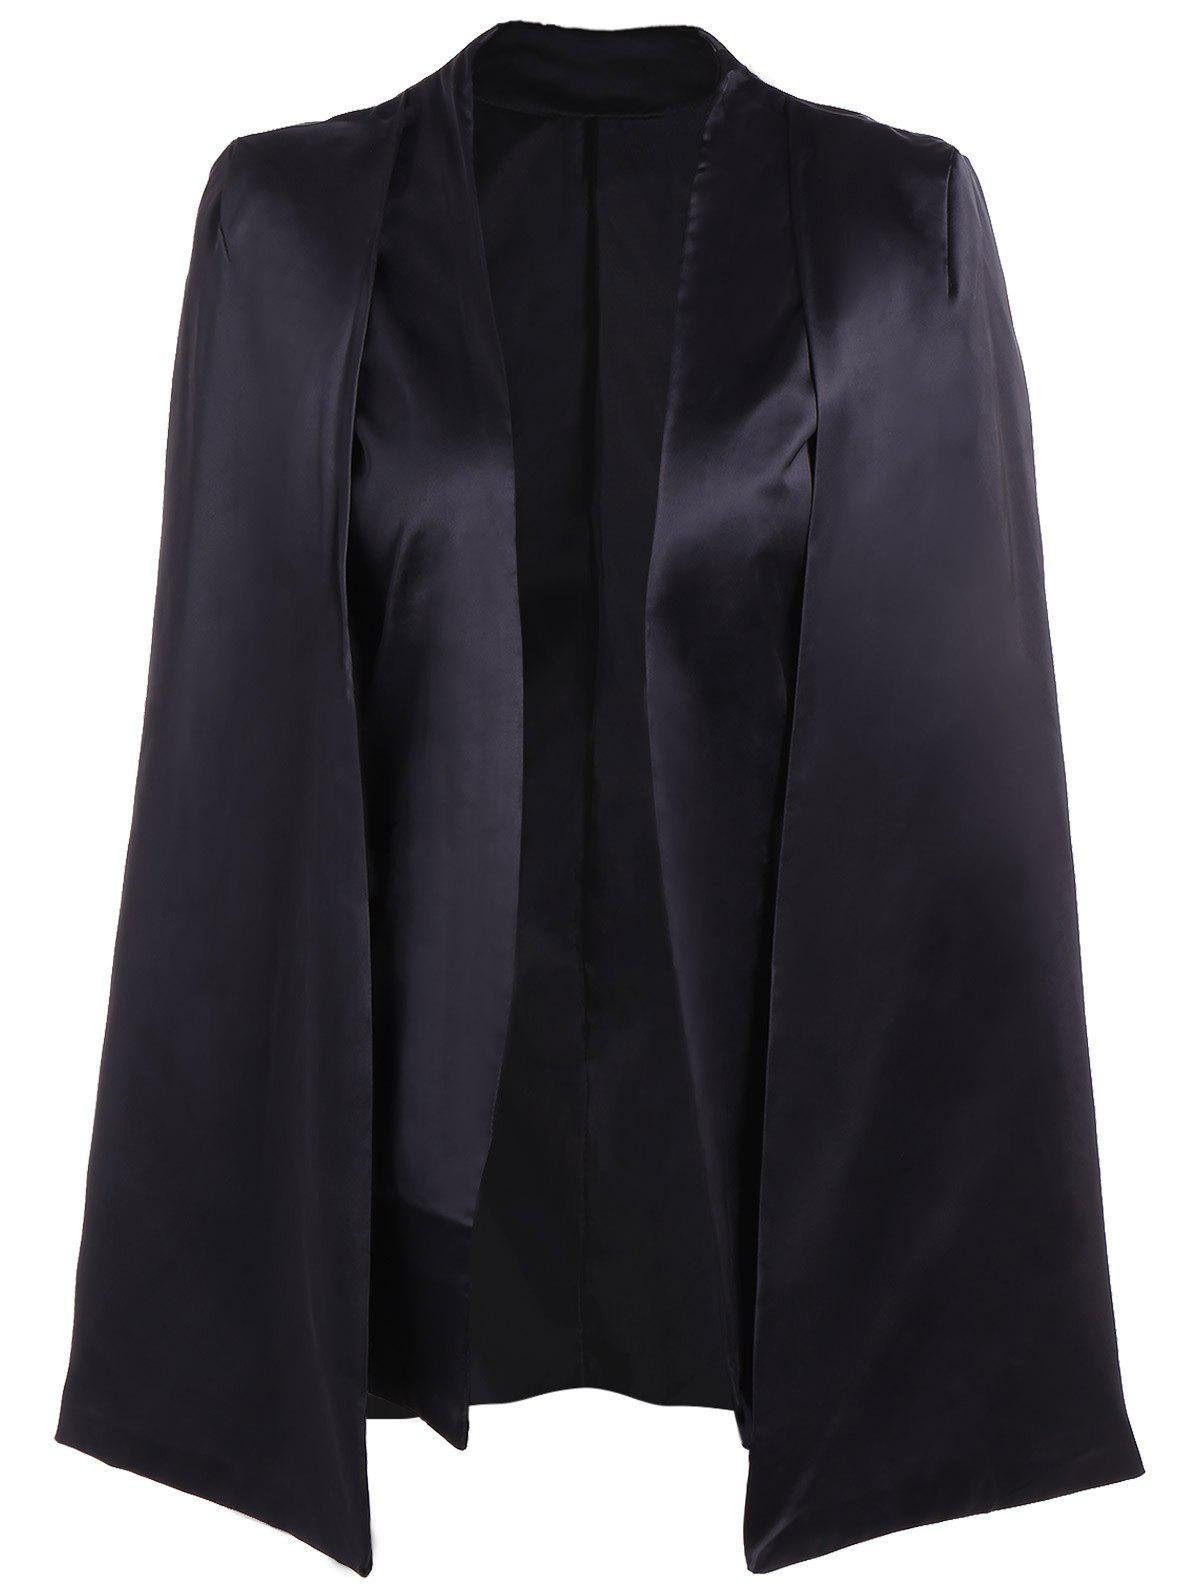 Formal Collarless Cape Blazer - Noir XL